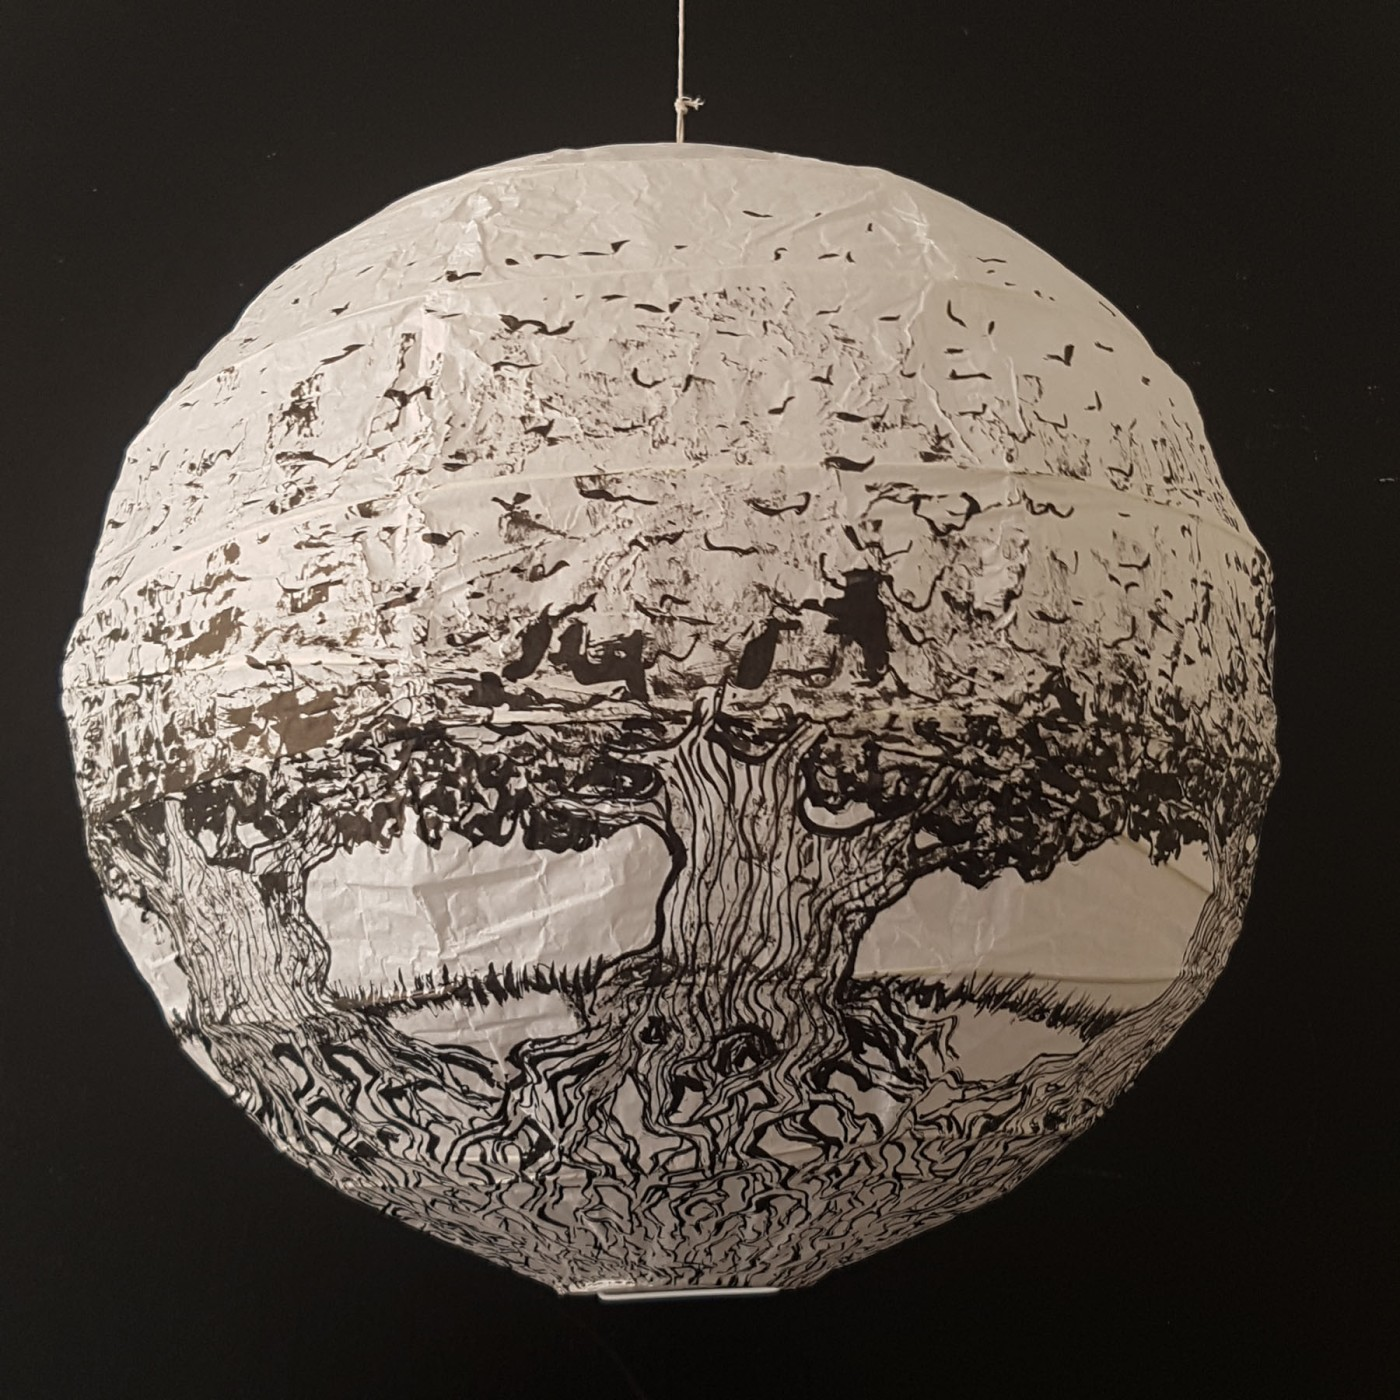 Painting of trees with roots on rice paper lamp. Artwork by Frits Ahlefeldt